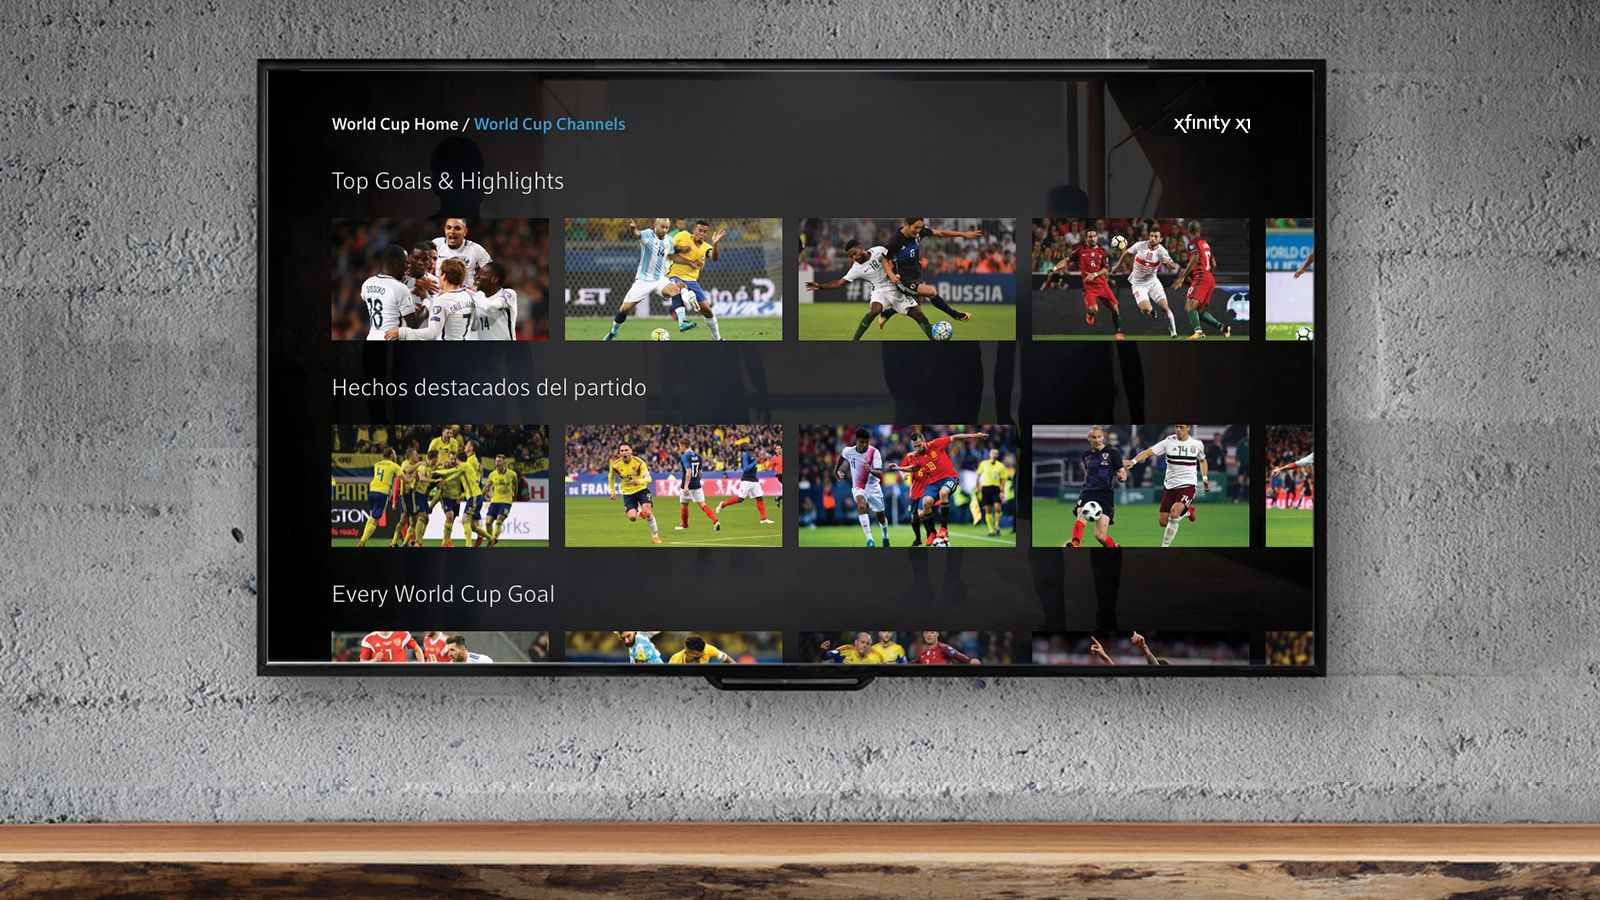 Creative_World Cup UI_World Cup Channels_16x9